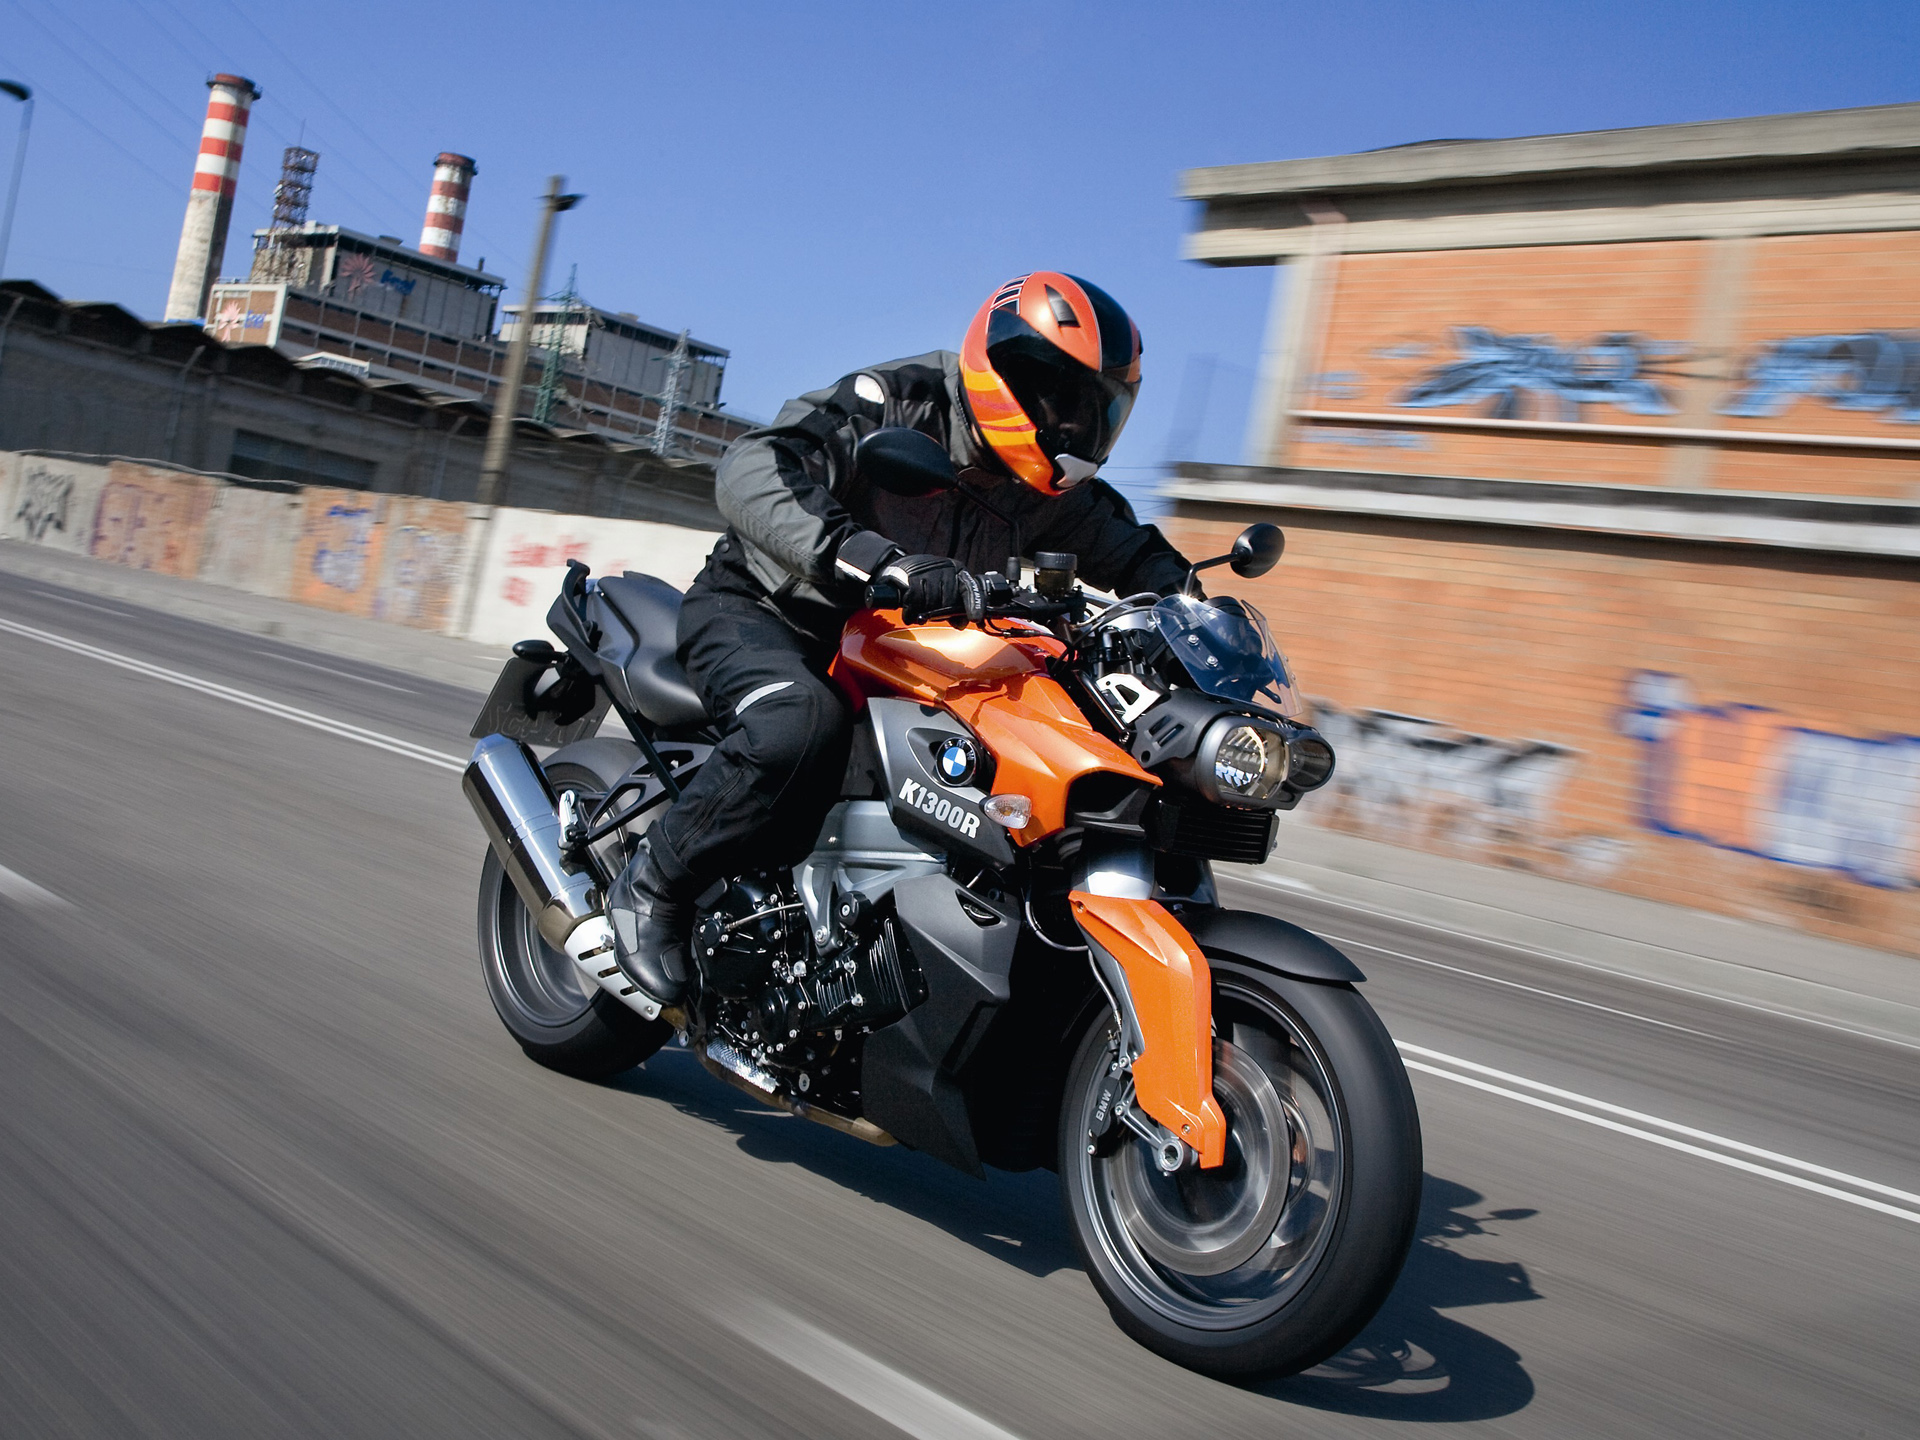 Bmw K1300r Photos Photogallery With 14 Pics Carsbase Com